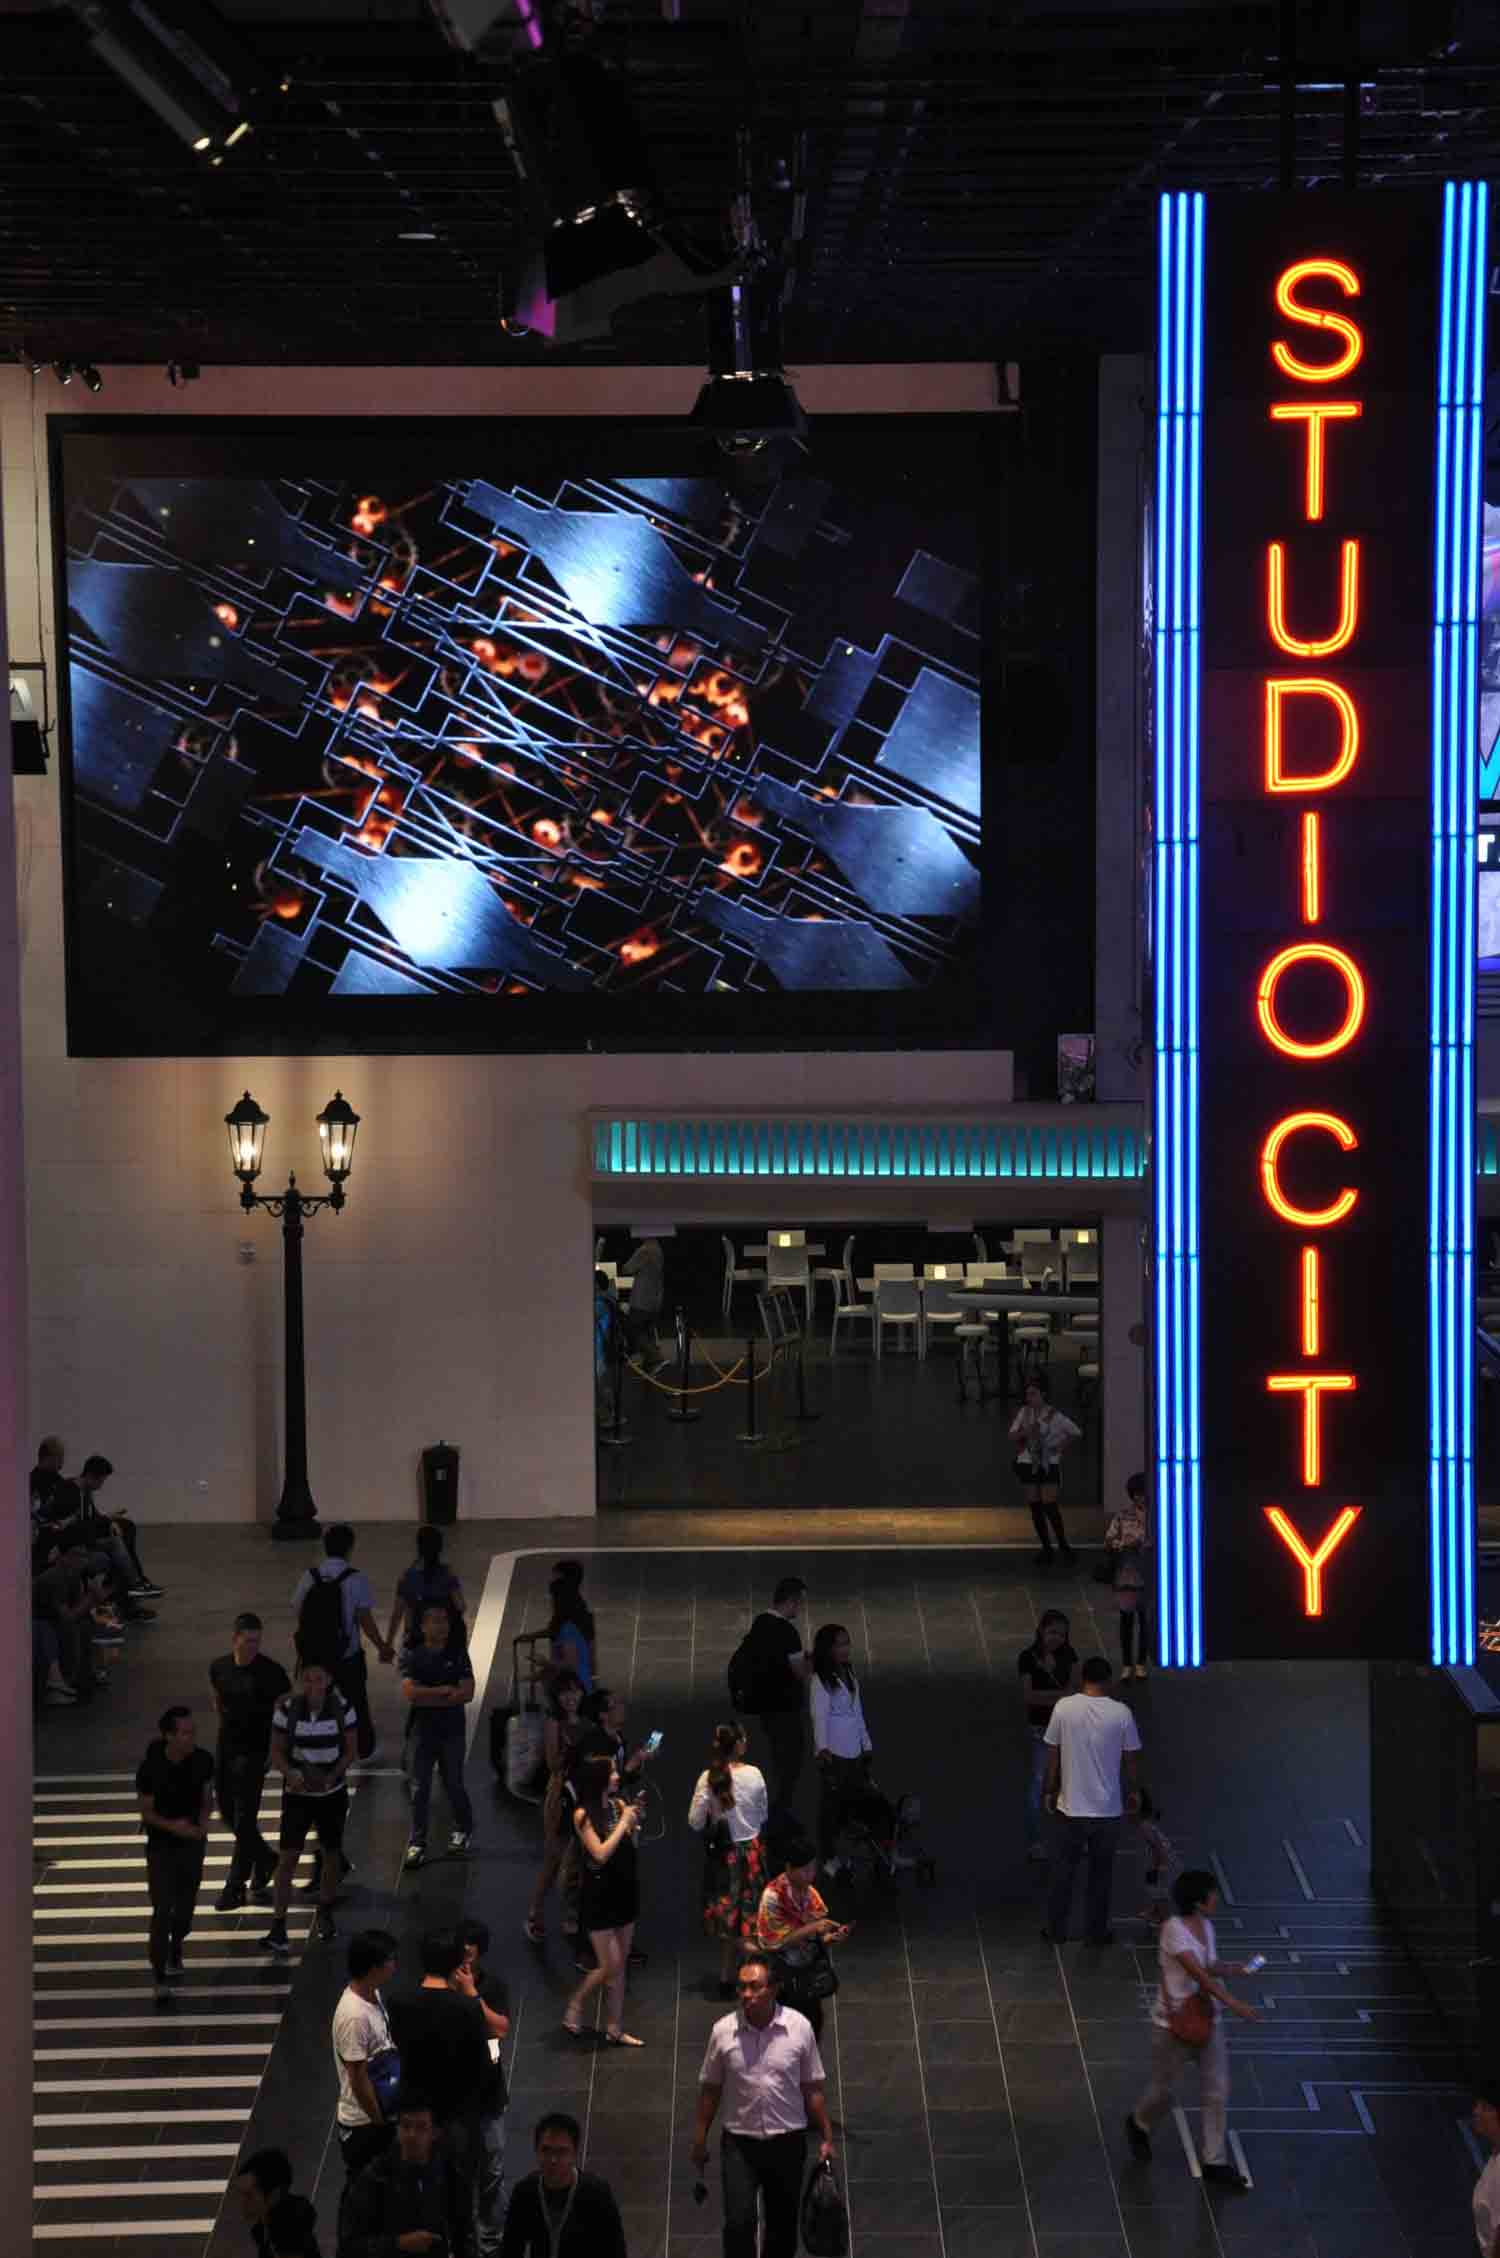 Studio City Macau sign